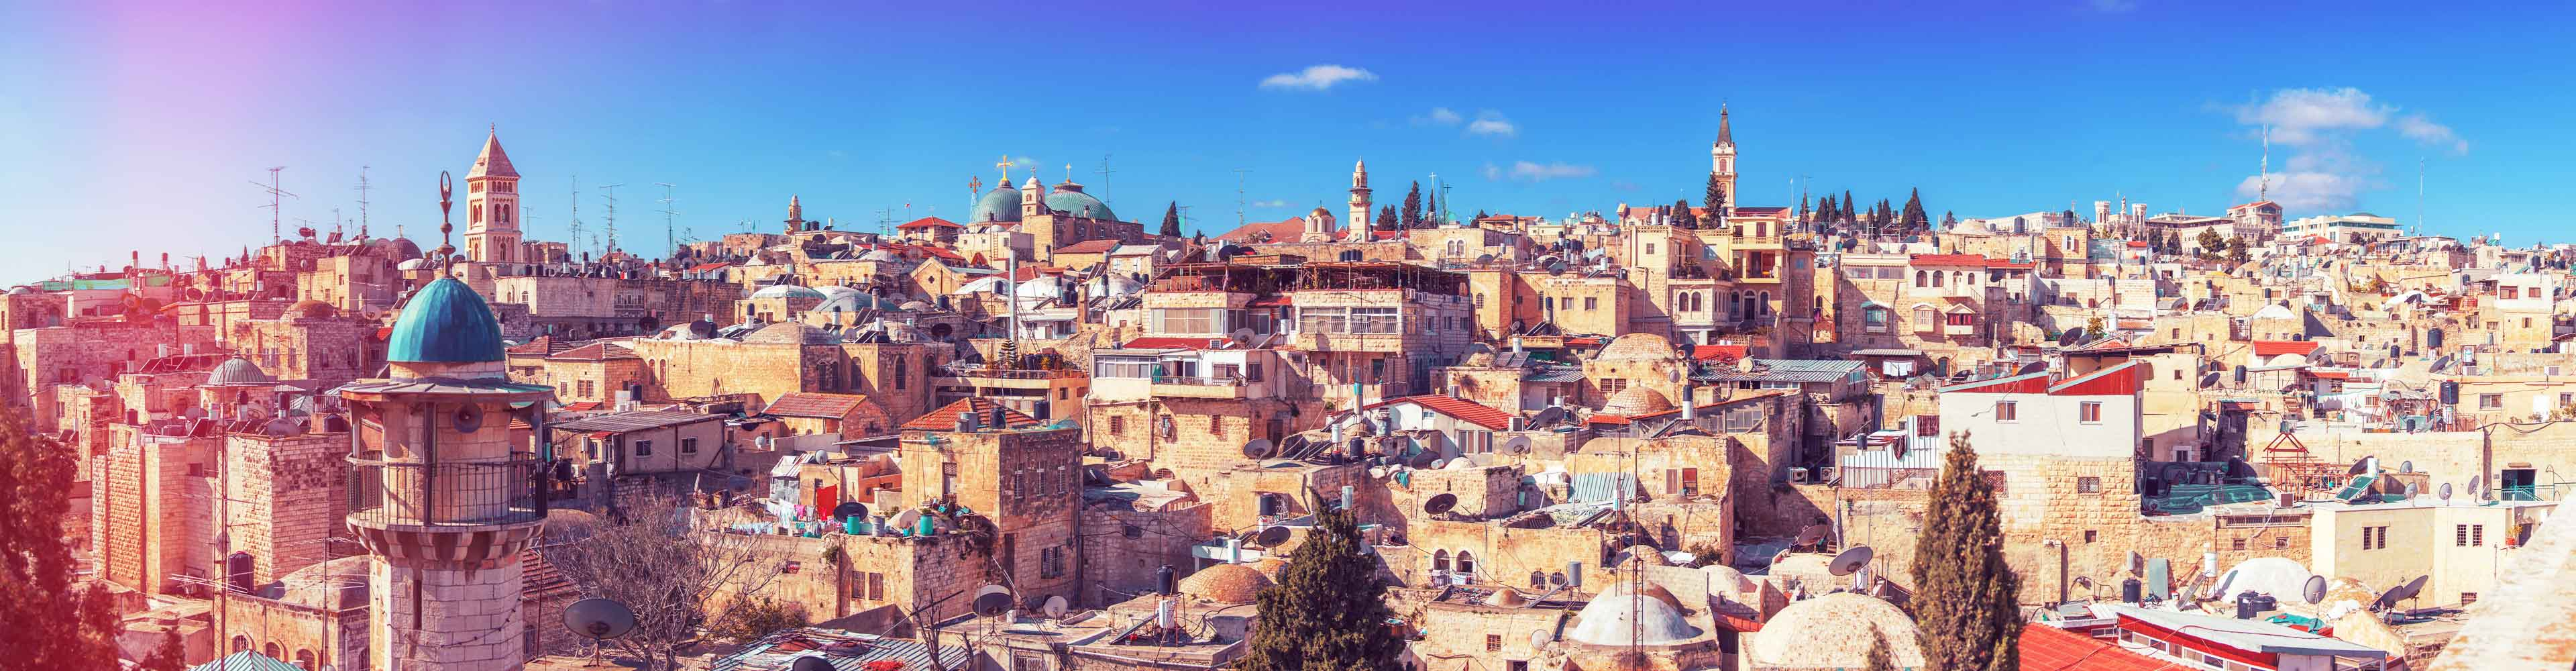 Five Days in Israel & the Palestinian Territories